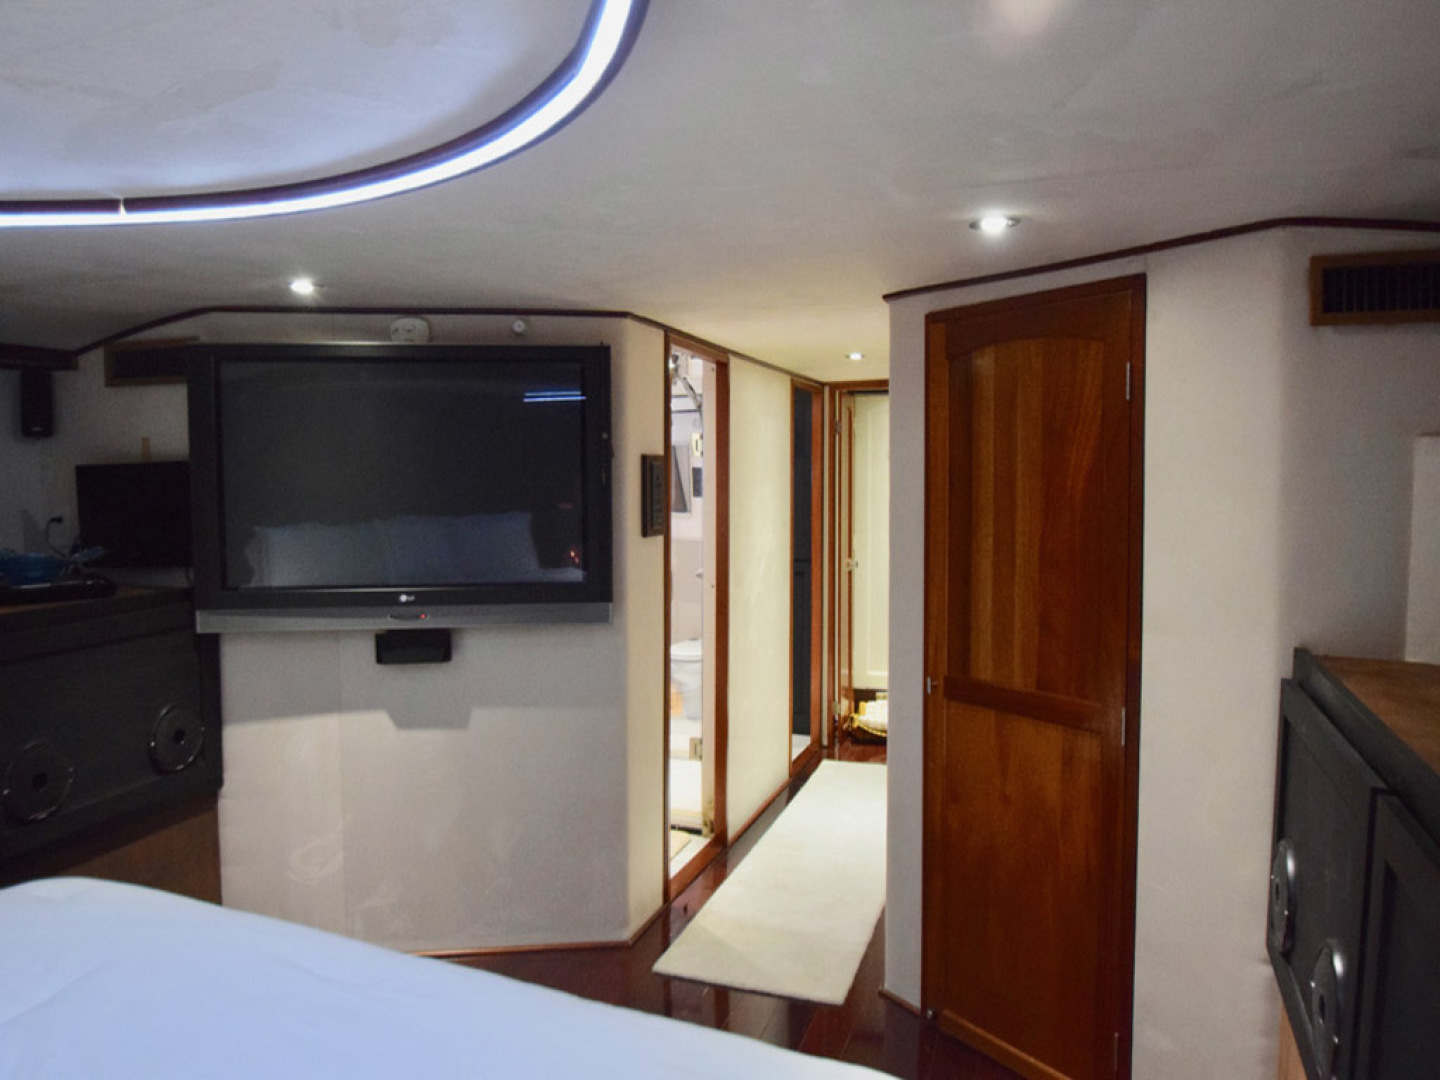 Hatteras-Cockpit Motoryacht 1989-Amelia Boca Raton-Florida-United States-Owners Suite To Midship-1206126 | Thumbnail